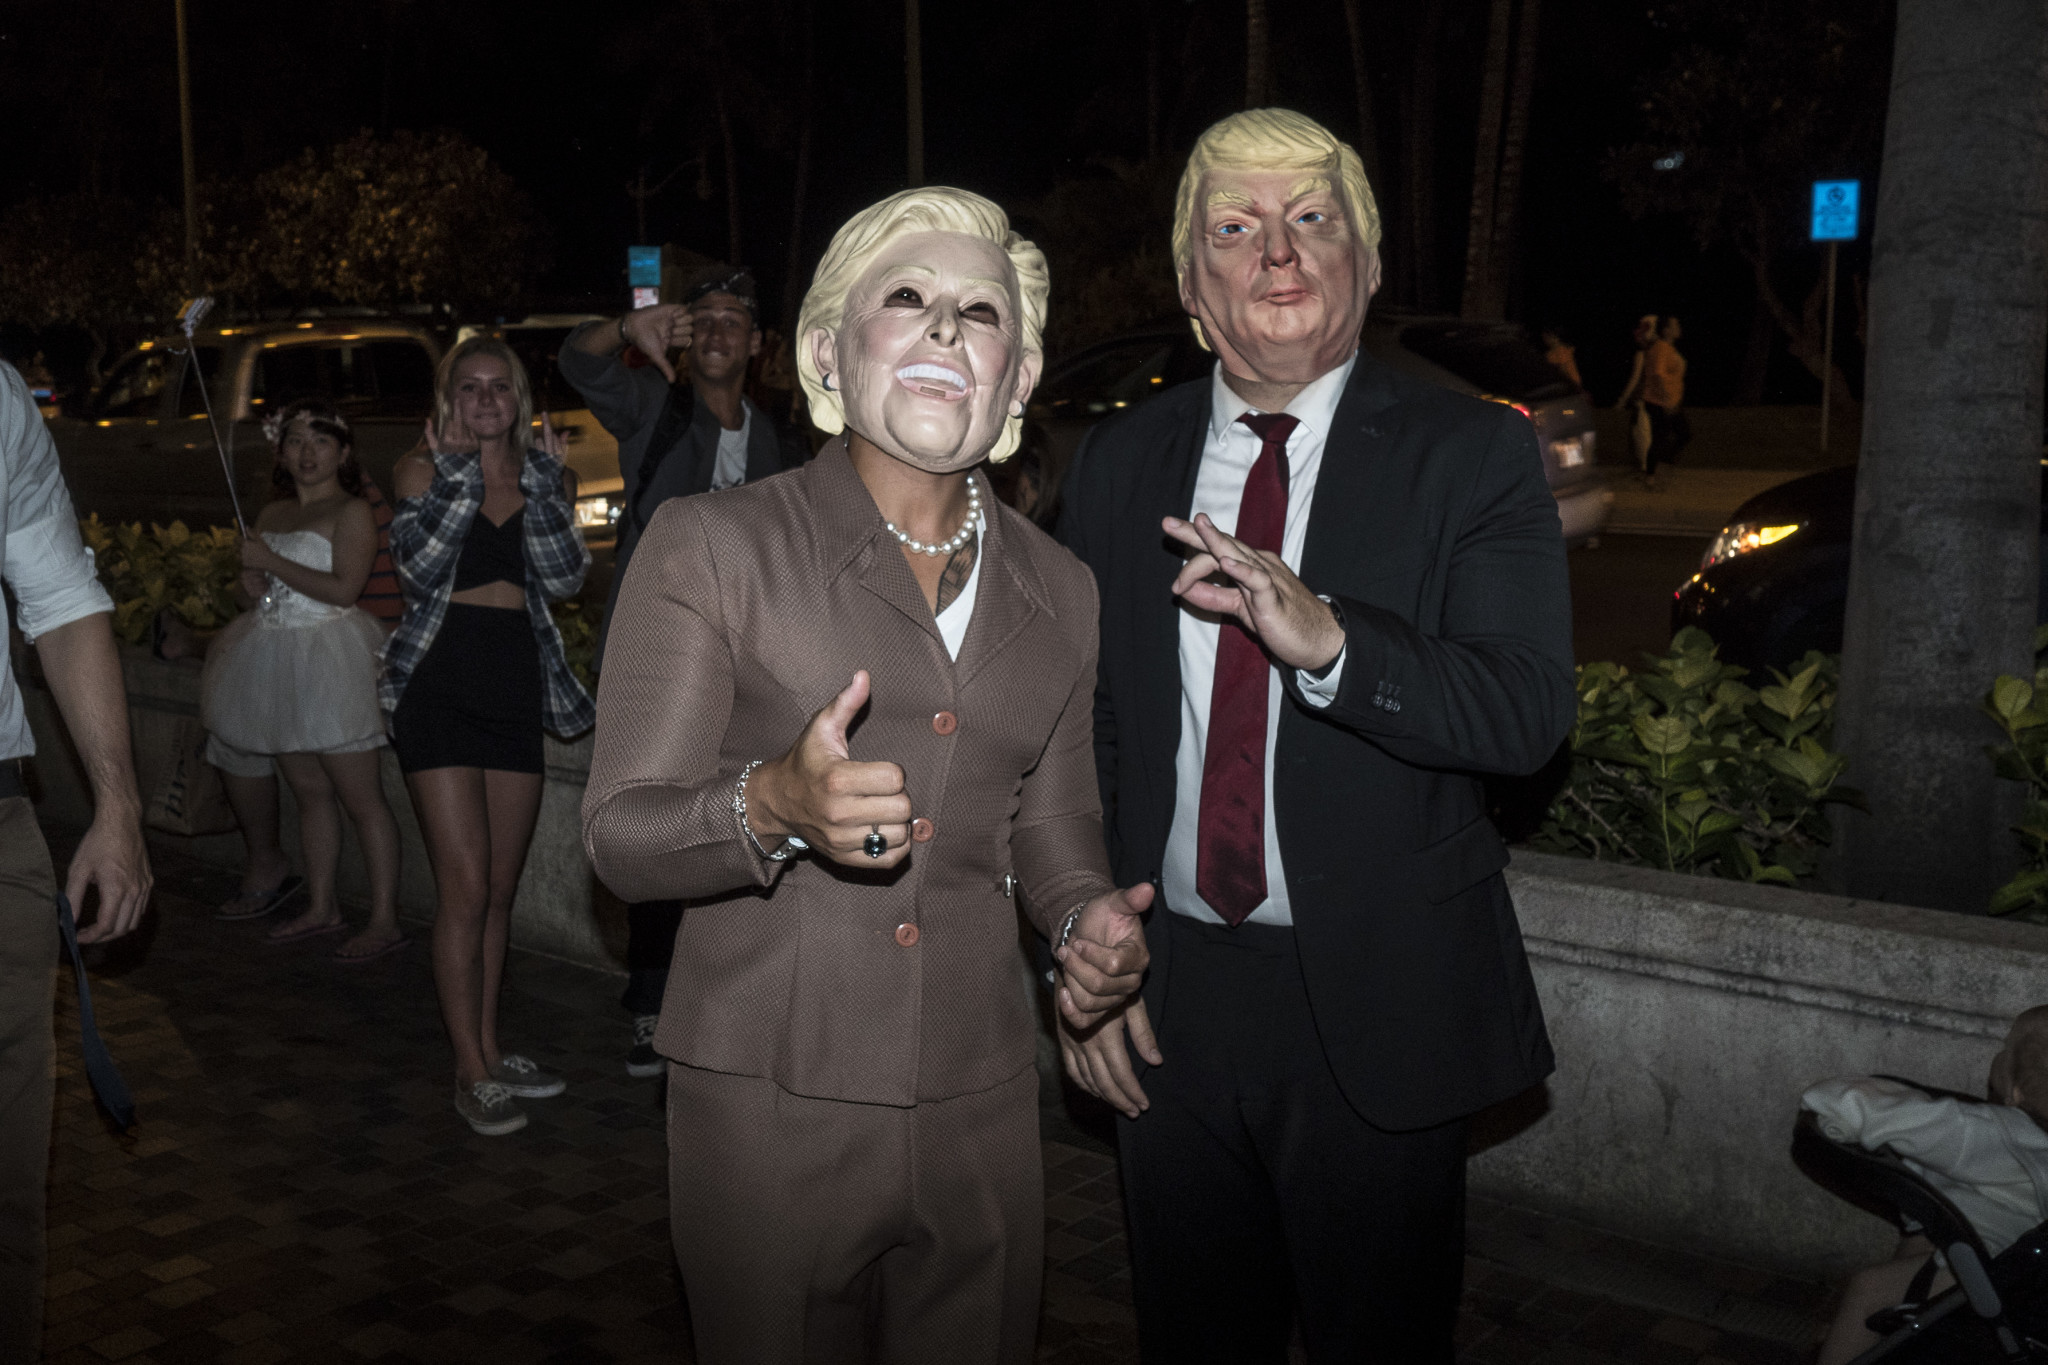 <p>This year&#8217;s presidential campaign has been scarier than usual, so Hillary Clinton and Donald Trump costumes seemed right at home.</p>